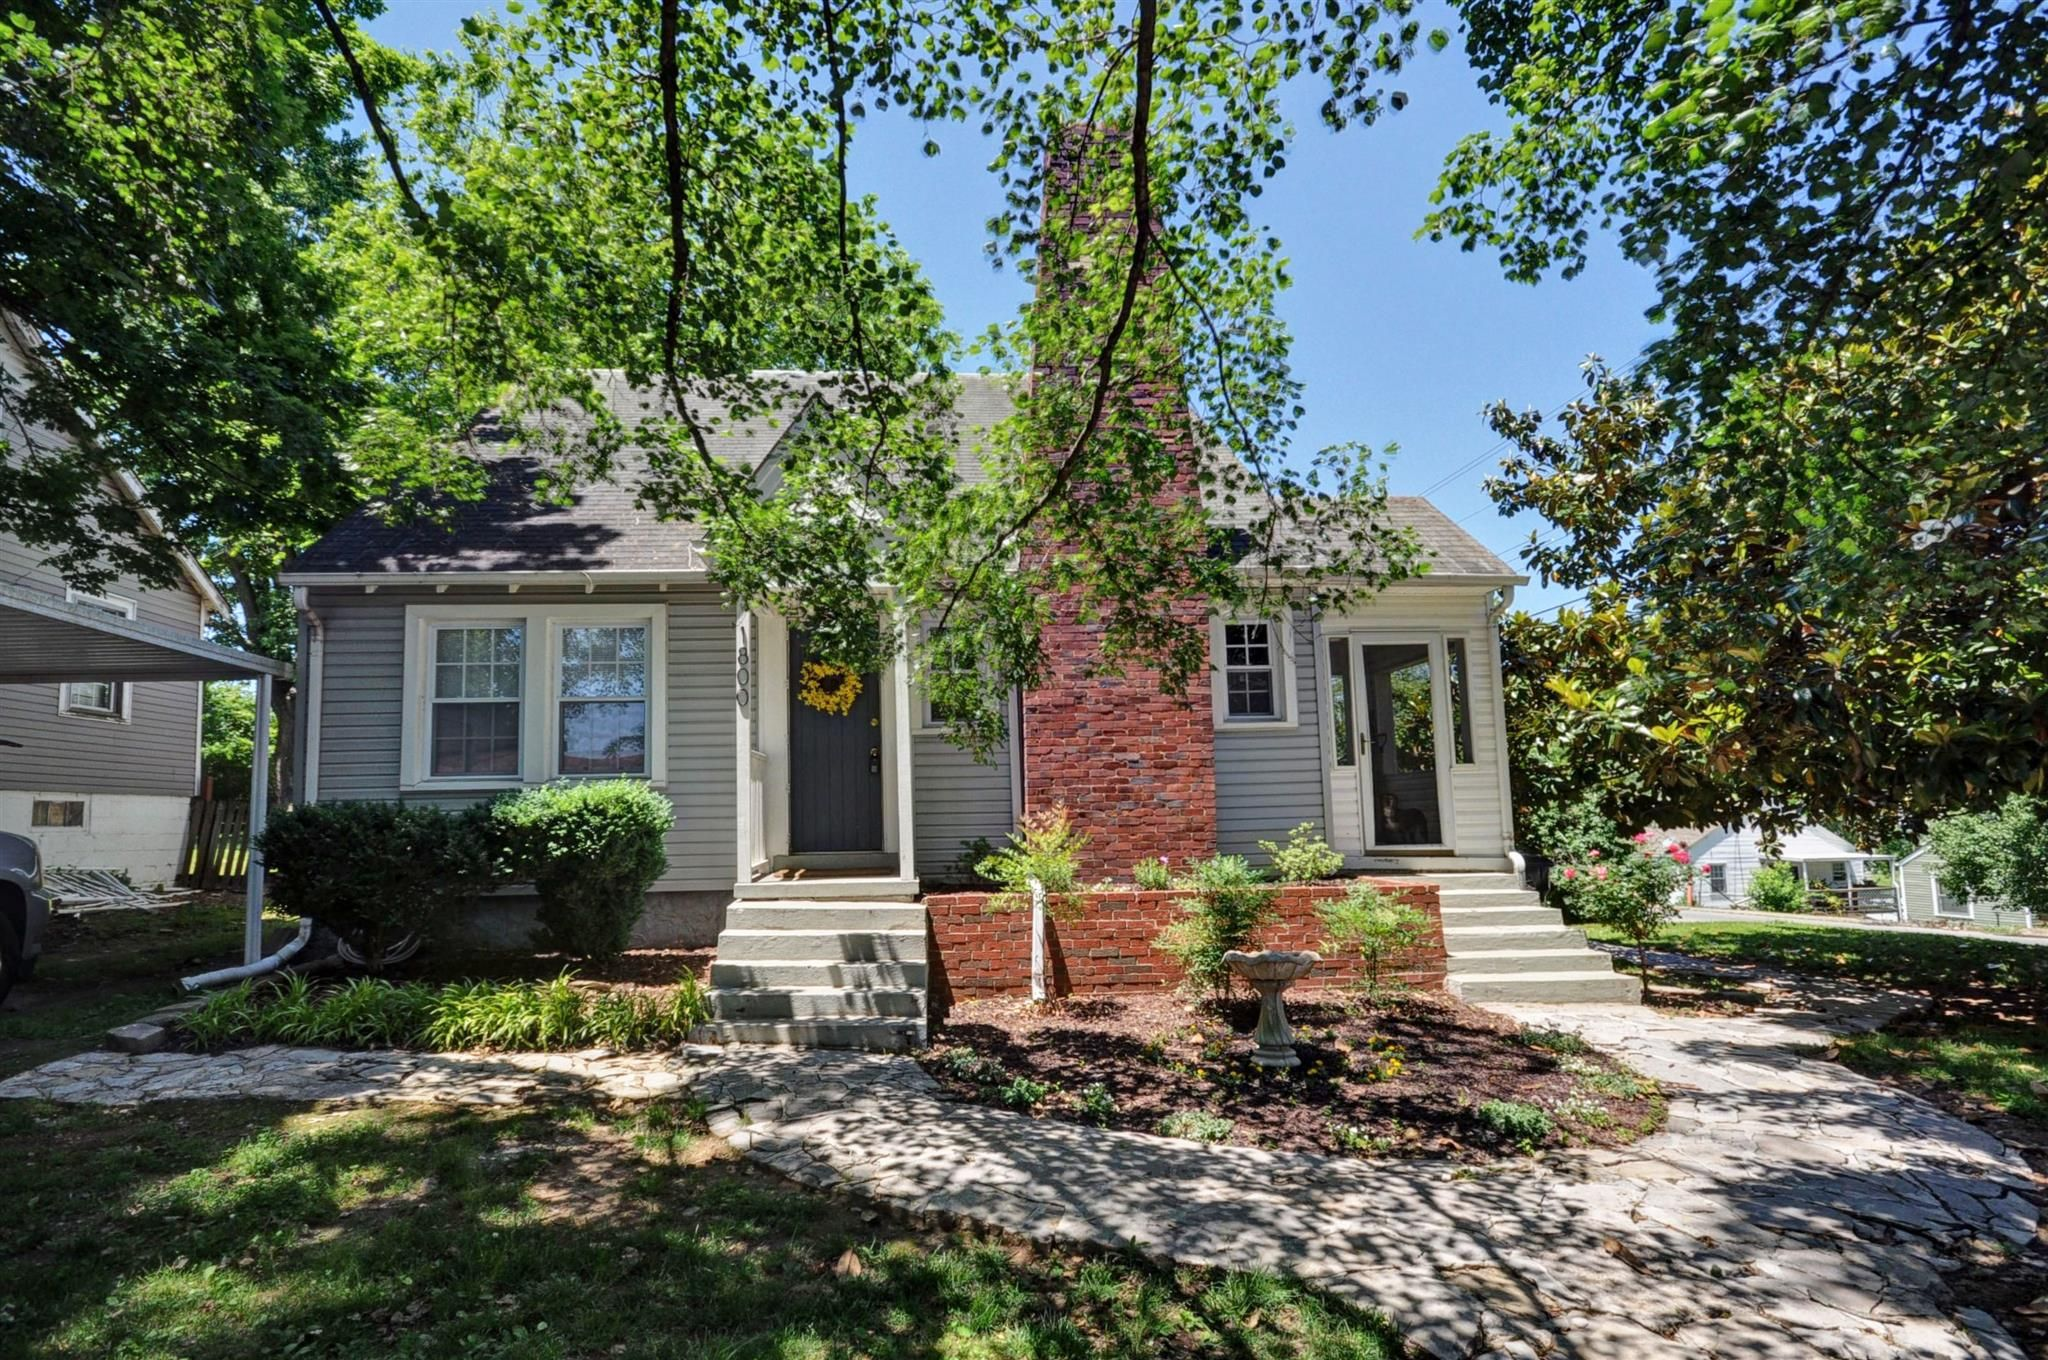 1800 dimple ct columbia tn 38401 4 bed 1 bath